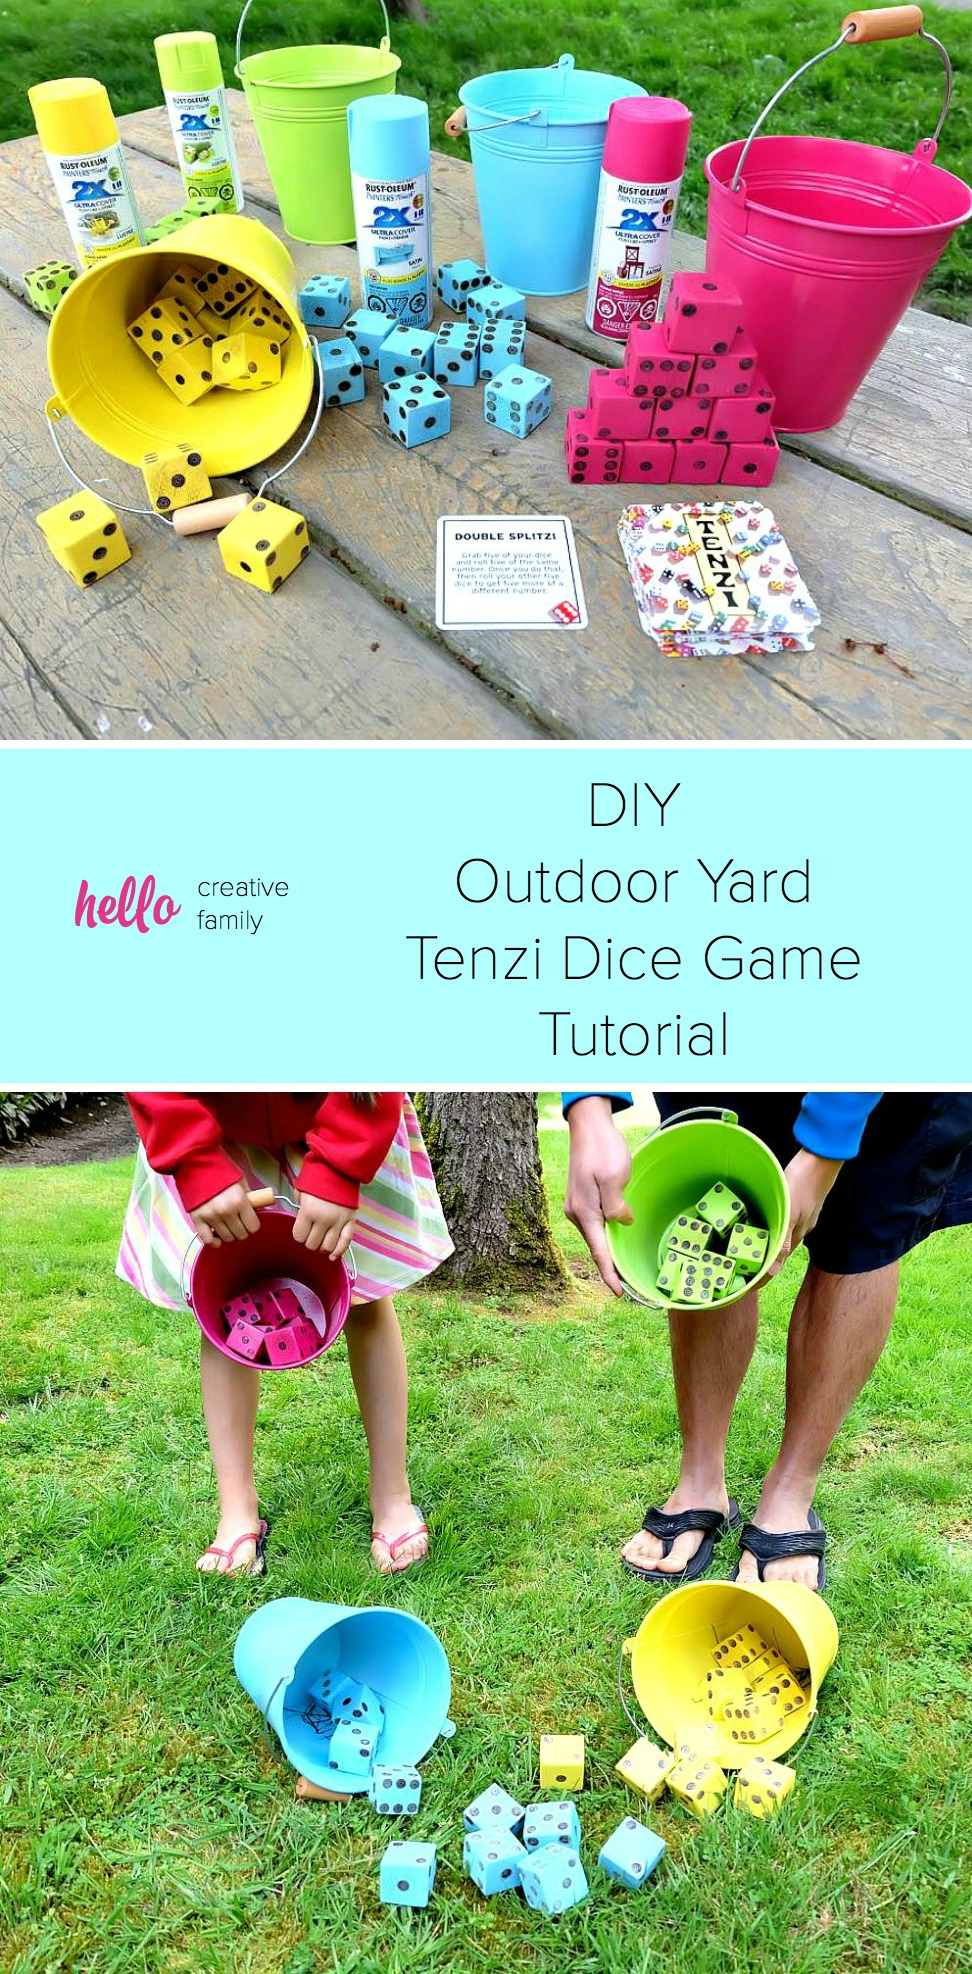 Diy tenzi outdoor yard dice game tutorial hello creative family summer just got a whole lot more fun with this fabulous weekend family project create solutioingenieria